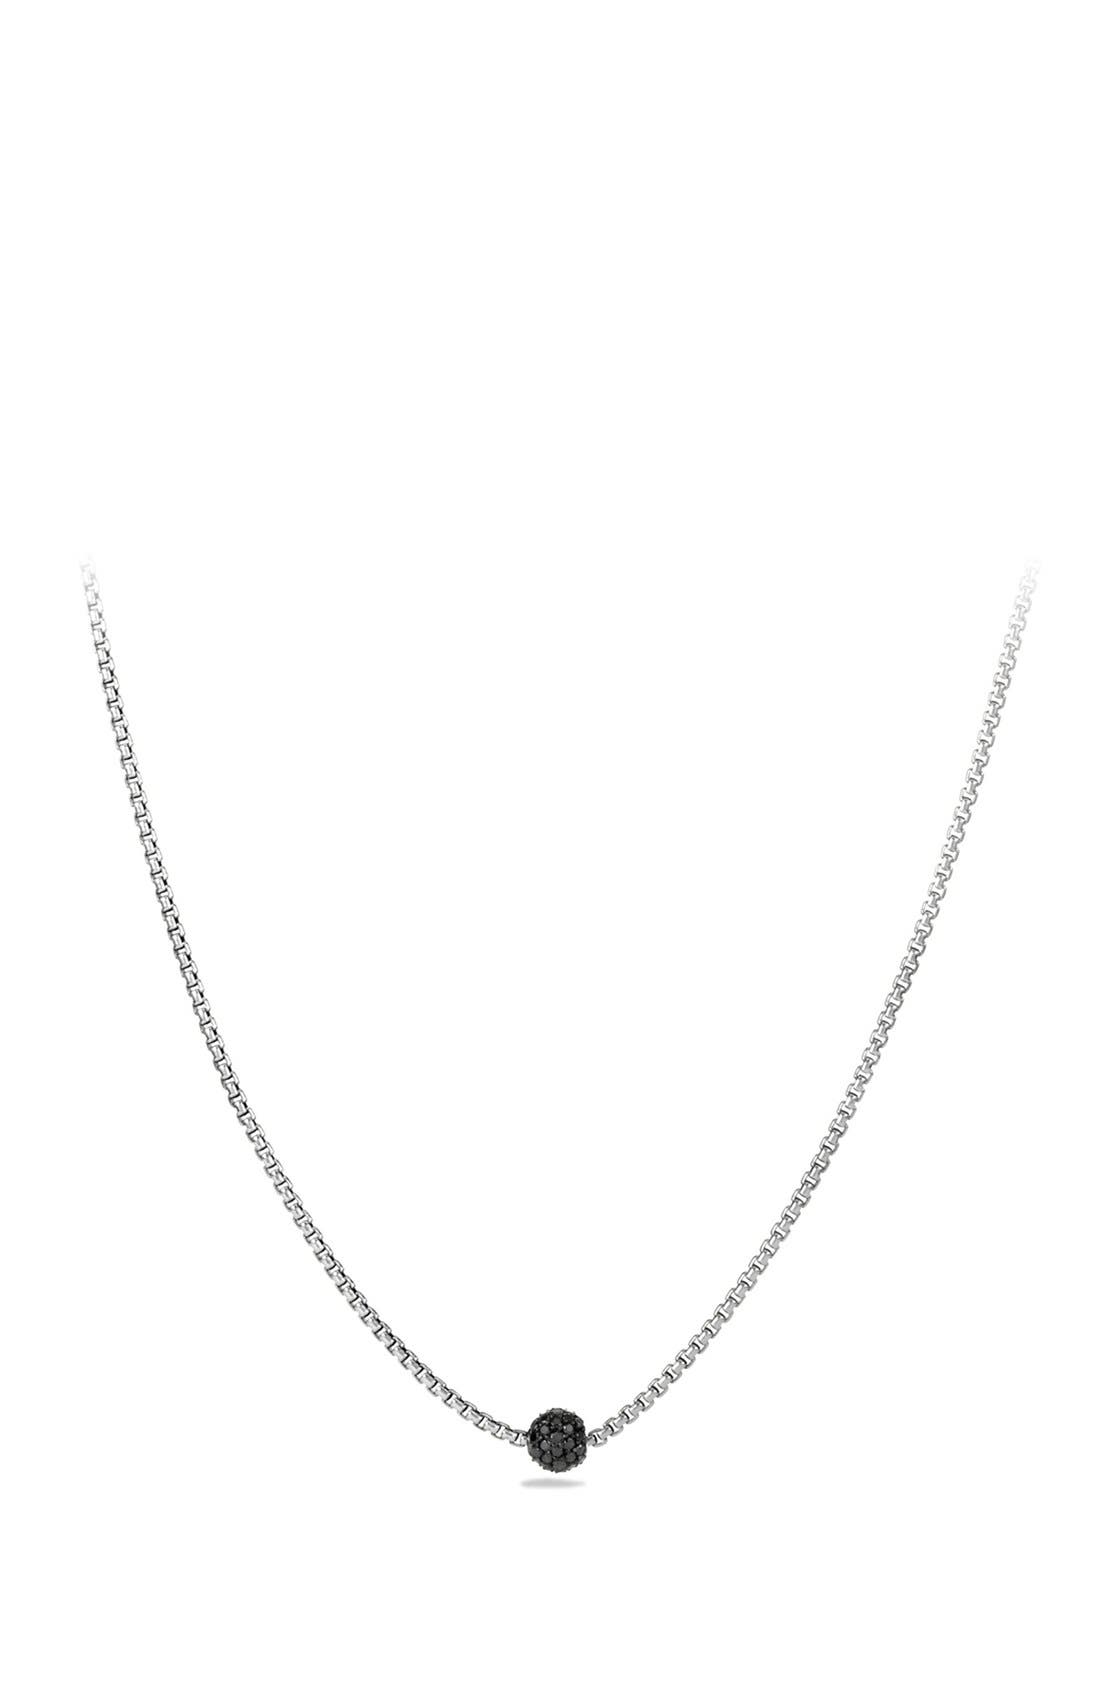 Main Image - David Yurman 'Petite Pavé' Necklace with Diamonds